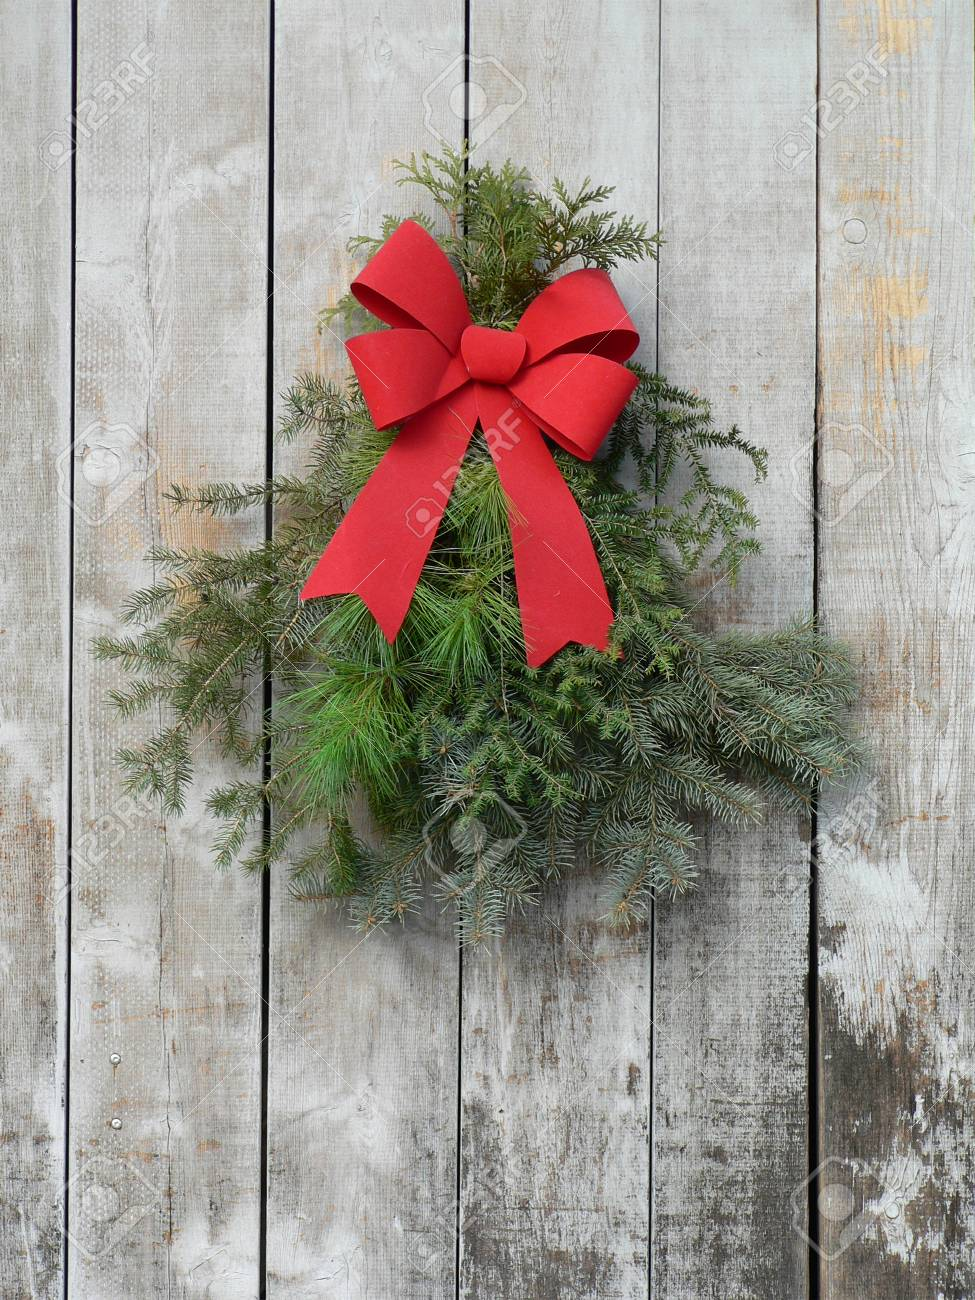 Christmas Swag.Christmas Swag On Rustic Barn Board